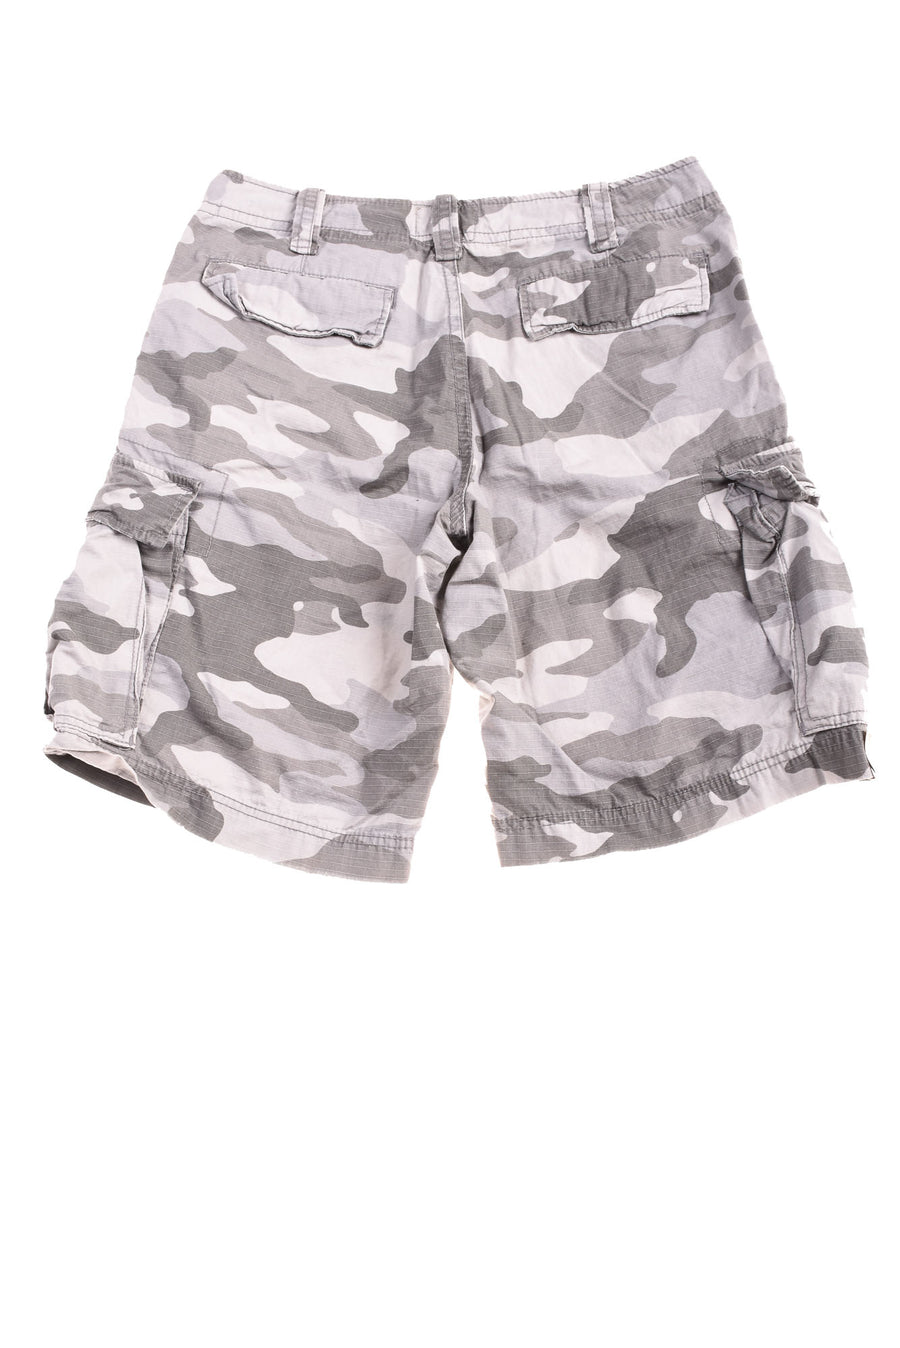 NEW American Living Men's Shorts 32 Gray